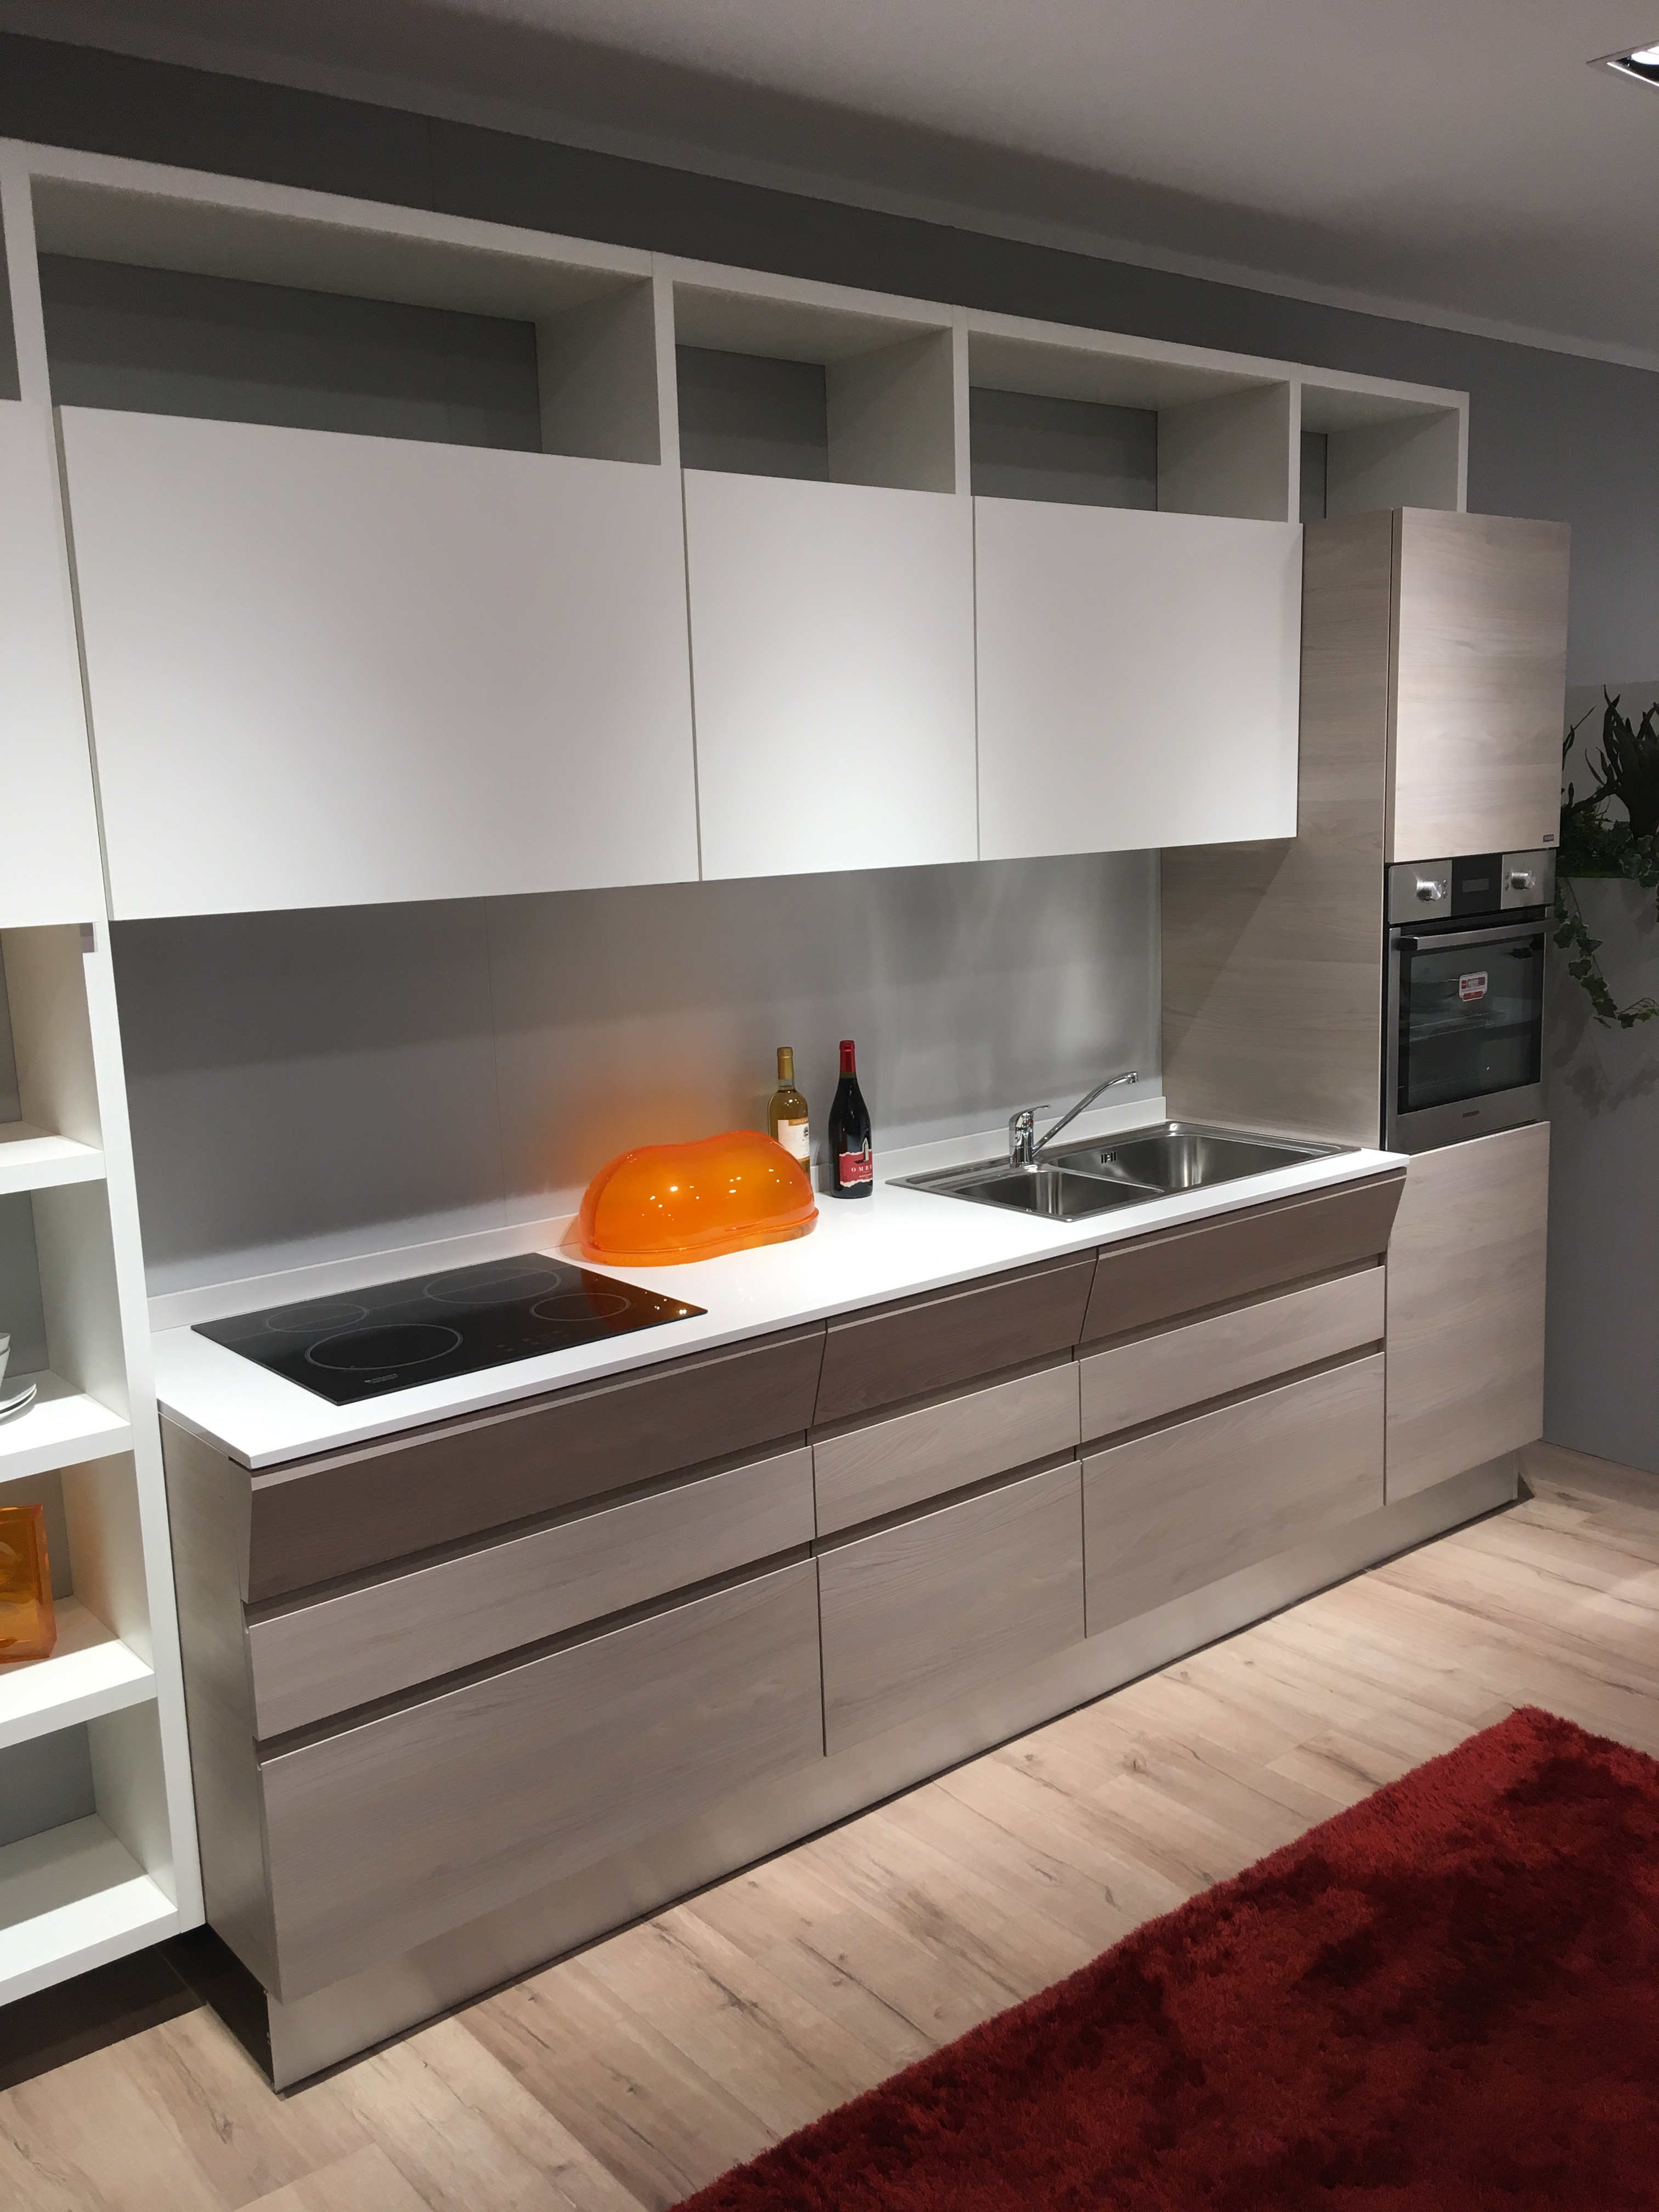 Listino Prezzi Scavolini. Listino Prezzi Scavolini With ...